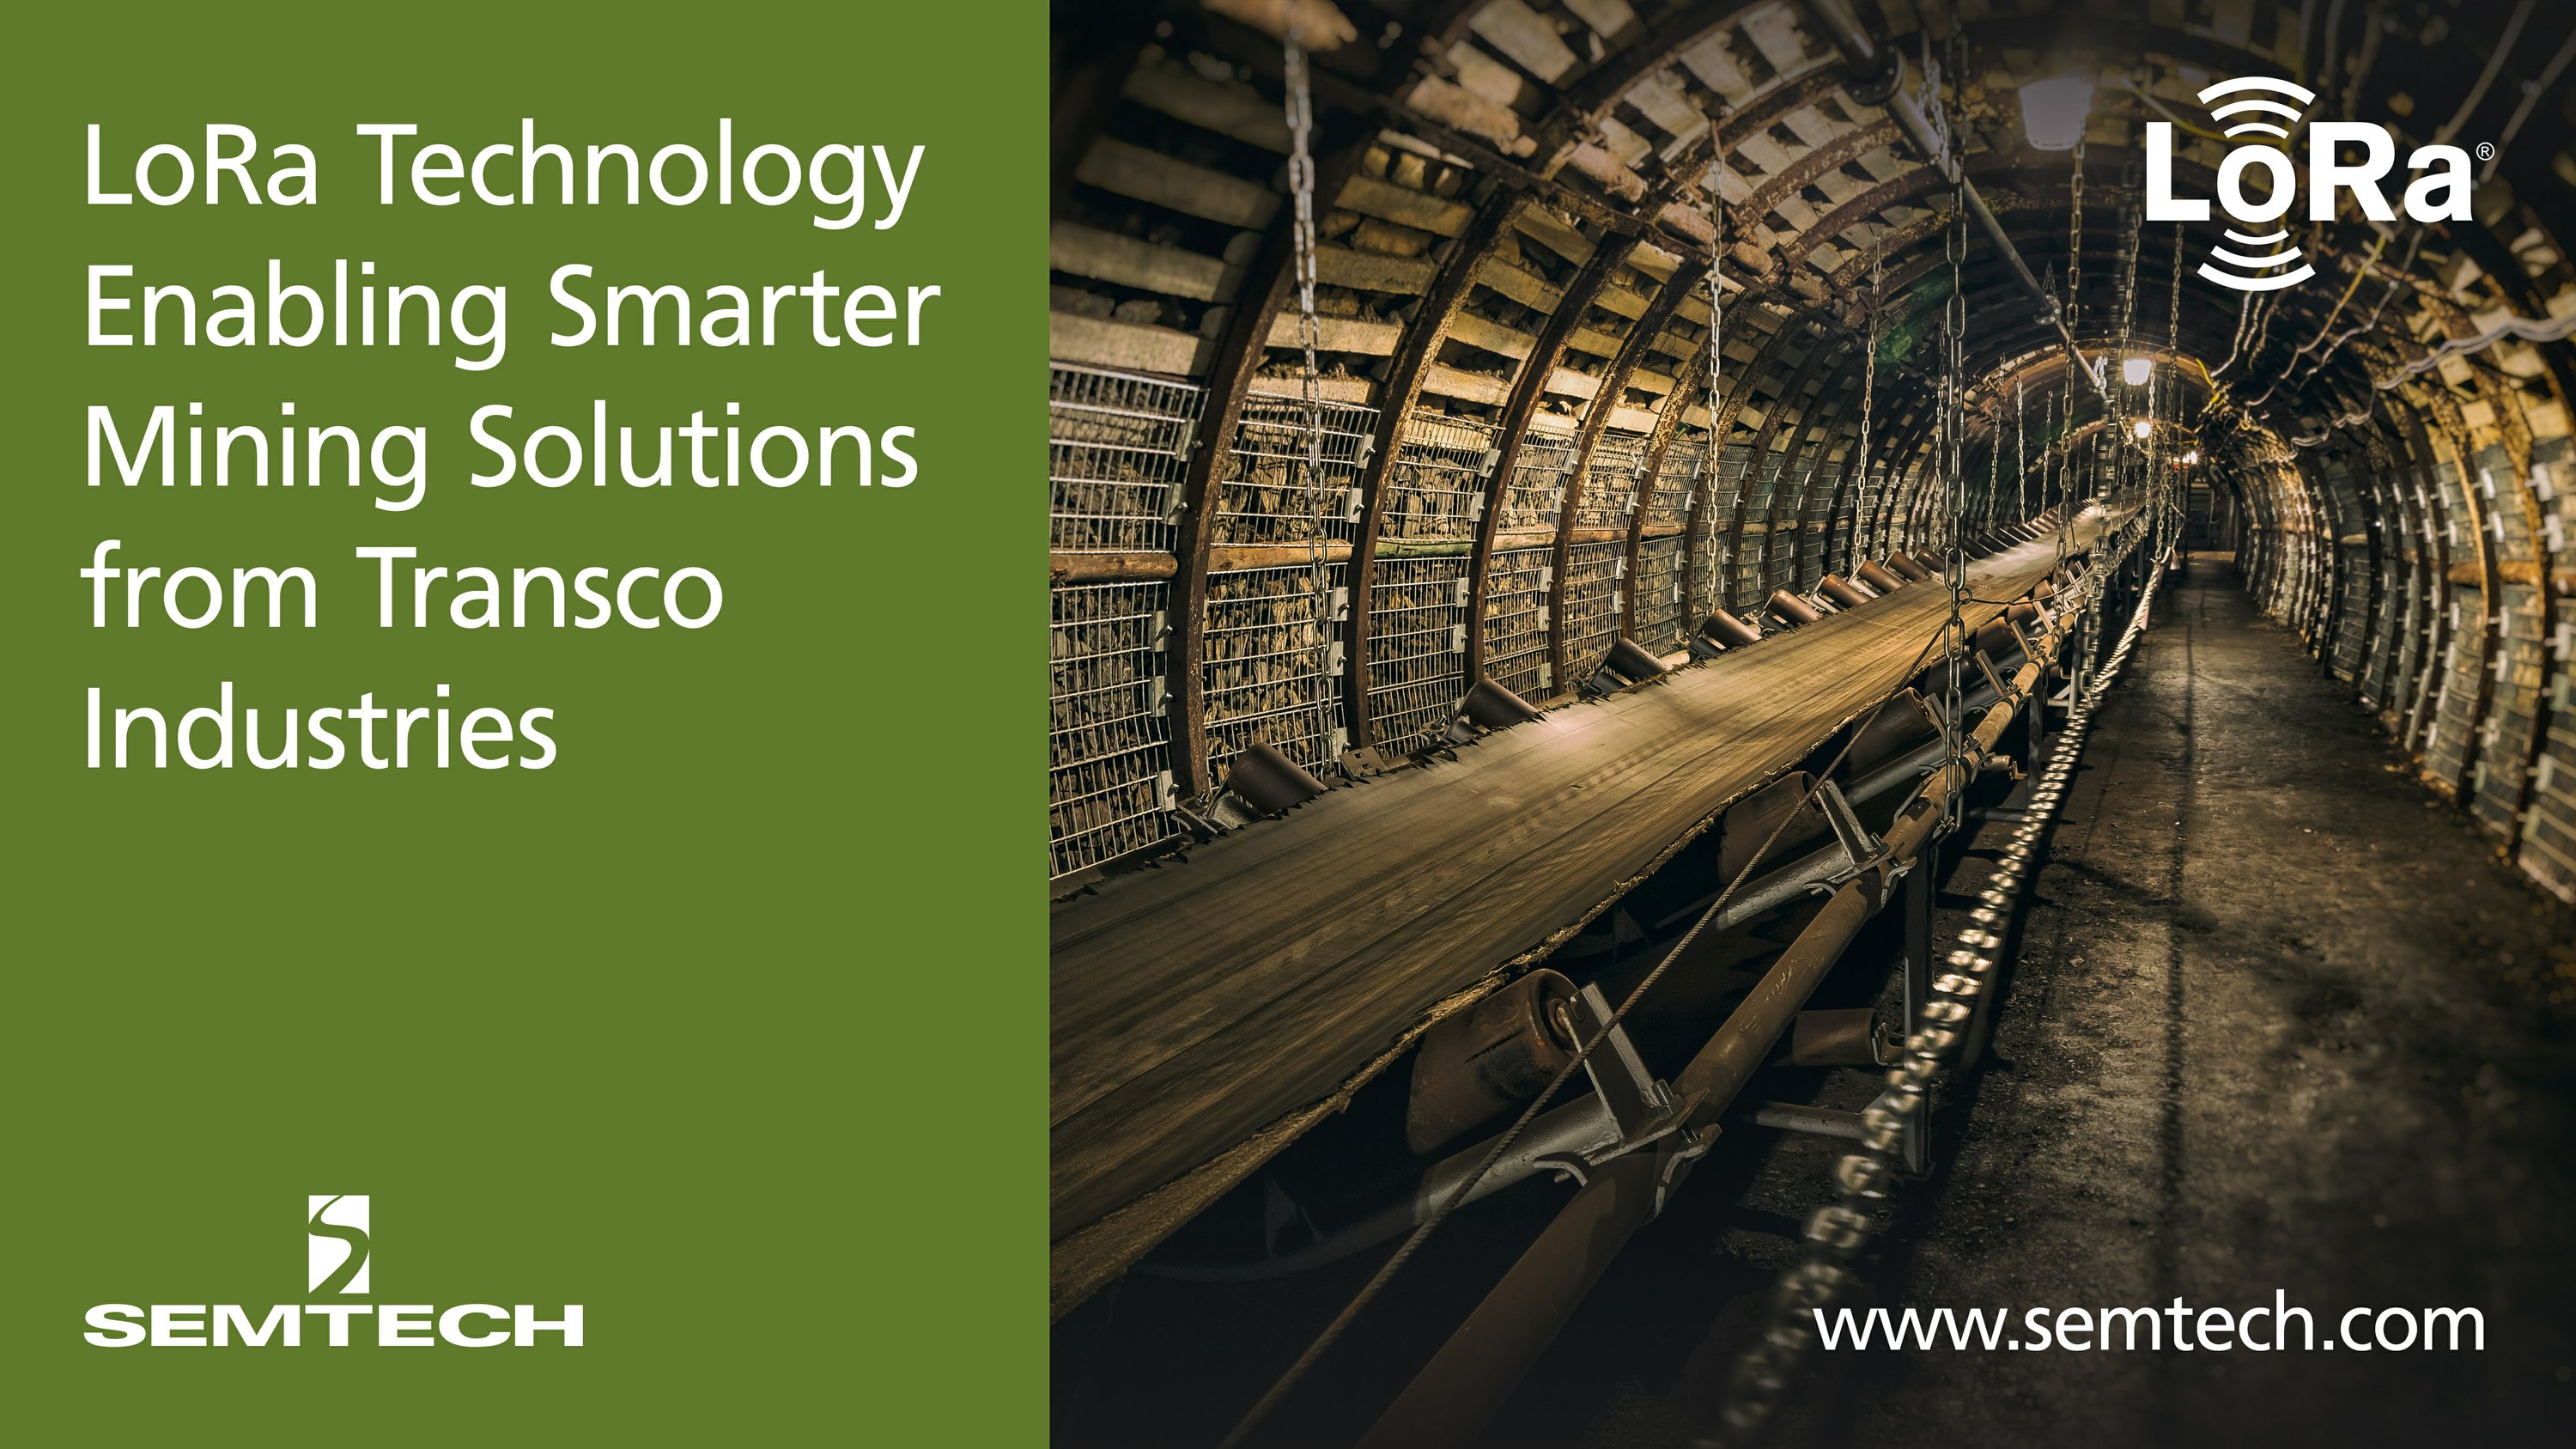 Semtech's LoRa Technology Enabling Smarter Mining Solutions from Transco Industries Inc.